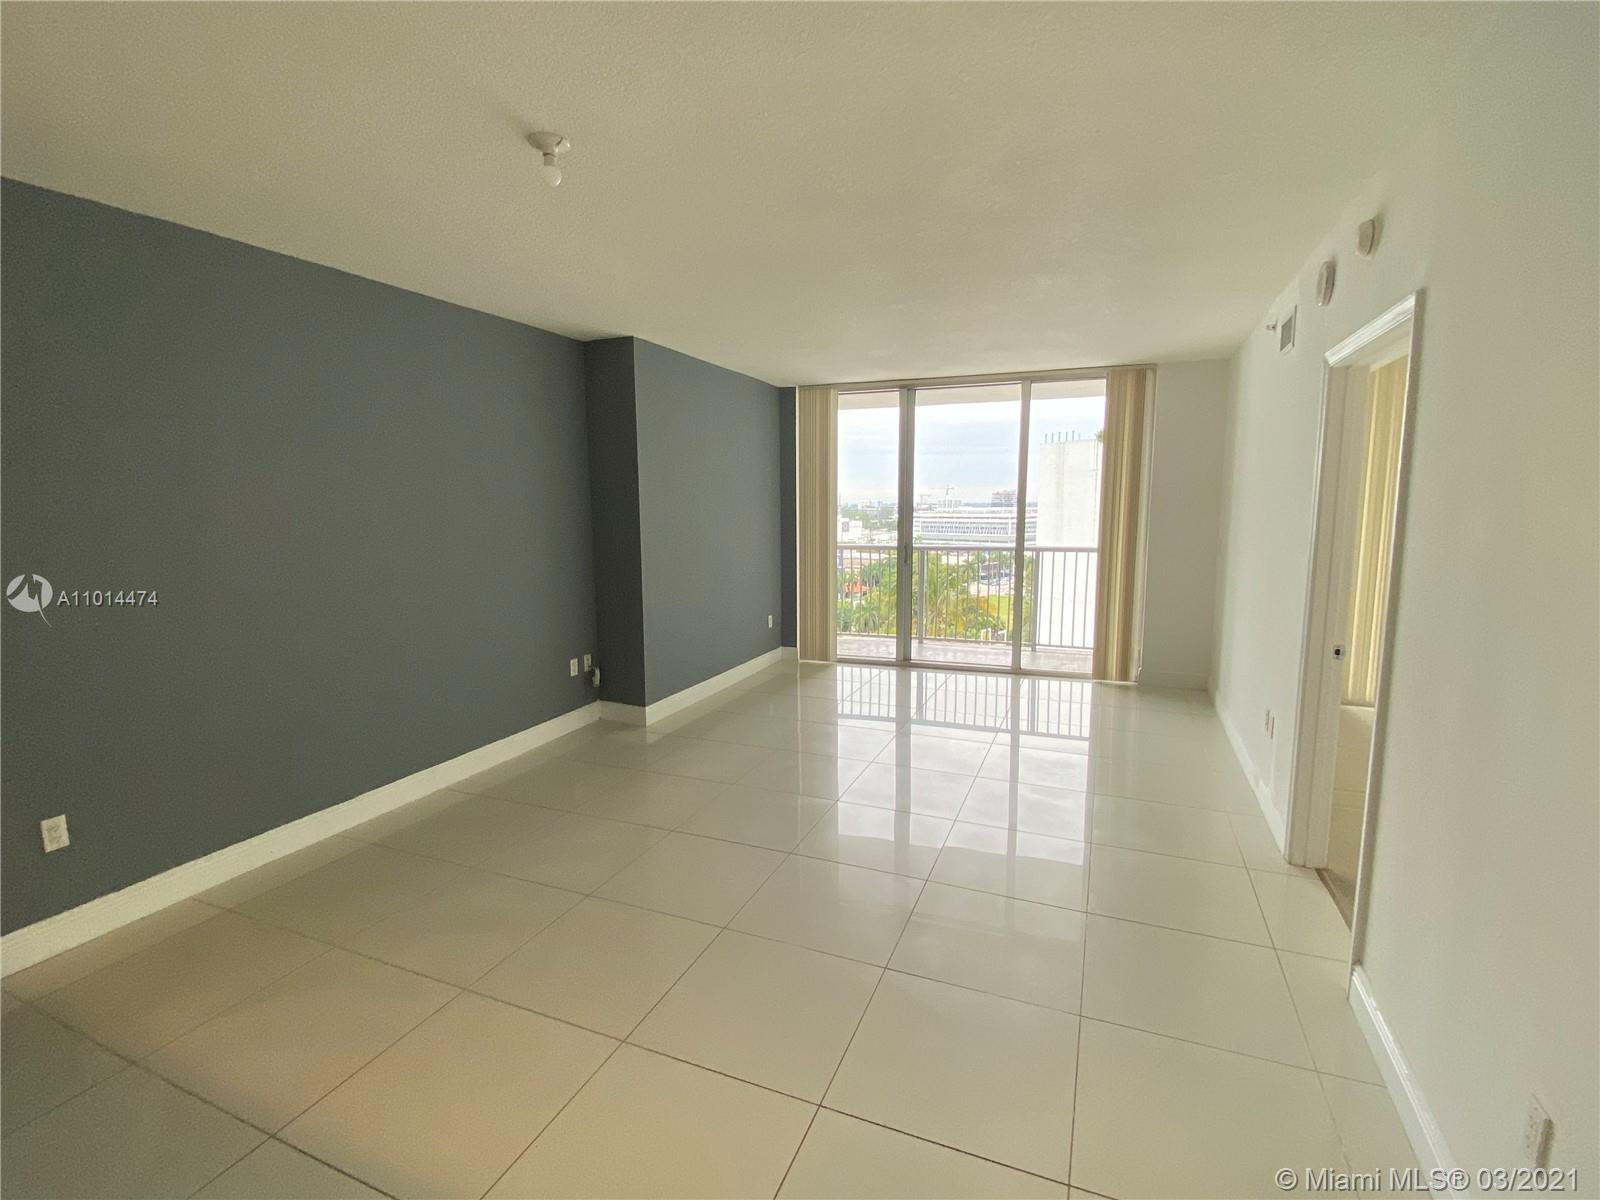 PRICED TO SELL!  COZY UNFURNISHED 791 SF 1 BED / 1 BATH UNIT IN VIBRANT EDGEWATER! ENJOY CITY AND PO